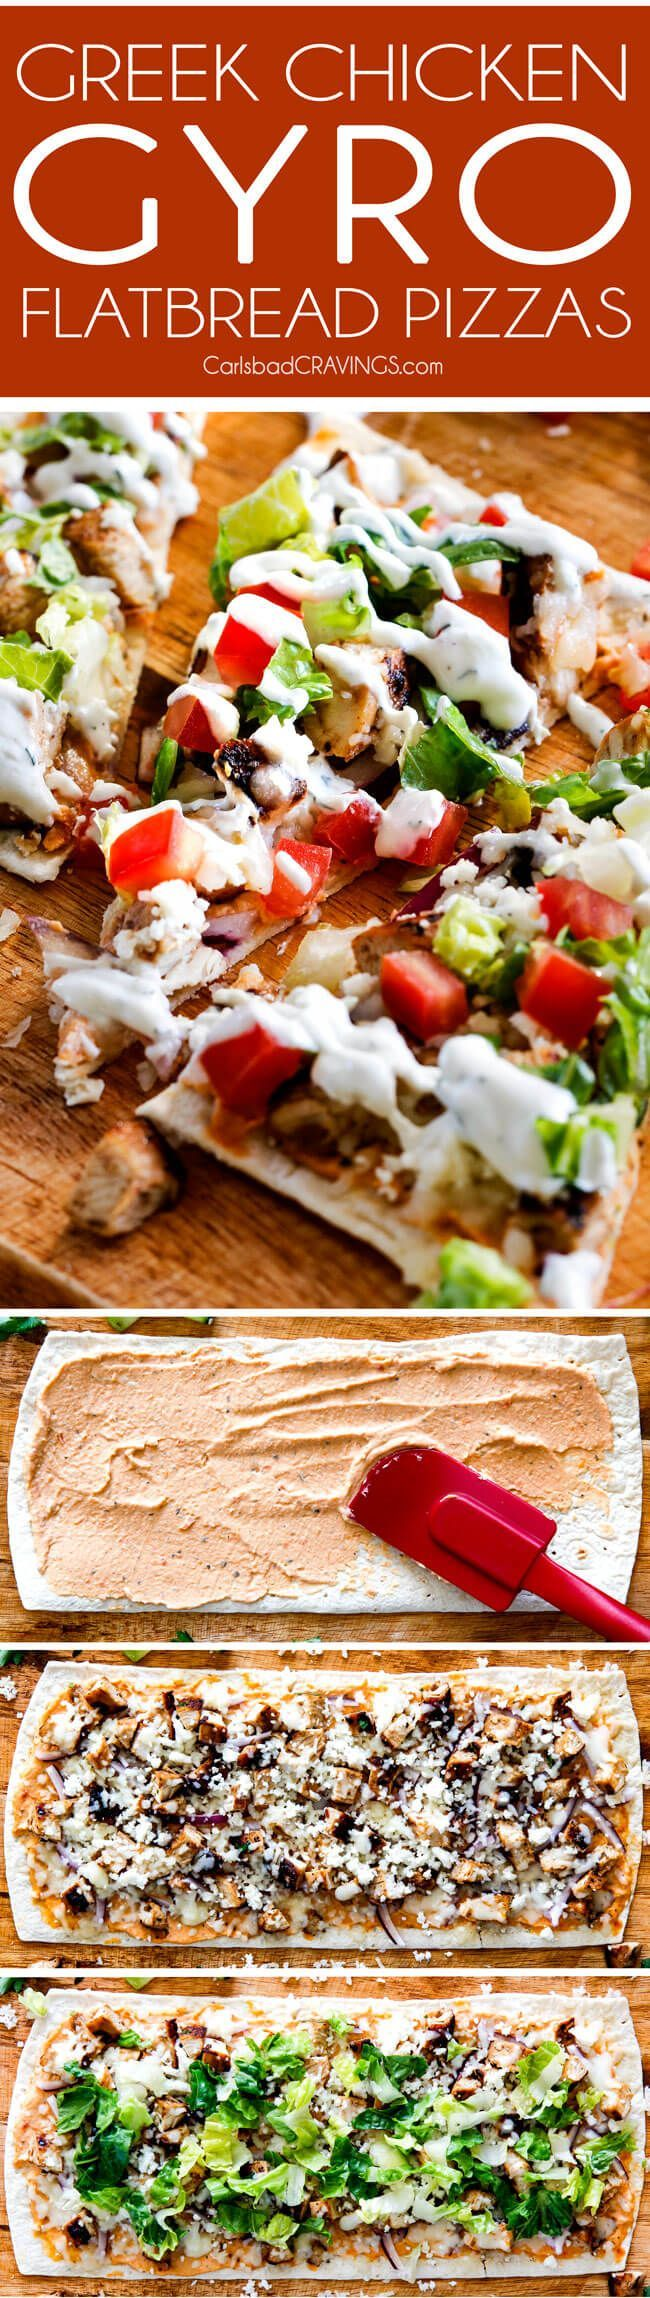 Greek Chicken Gyro Flatbread Pizzas – these are amazing and SO quick and easy!  An explosion of flavors and textures with the most flavorful Greek Chicken and easy Blender Tzatziki!  Great for lunch/dinners or for appetizers and entertaining!  via @Carlsbad Cravings